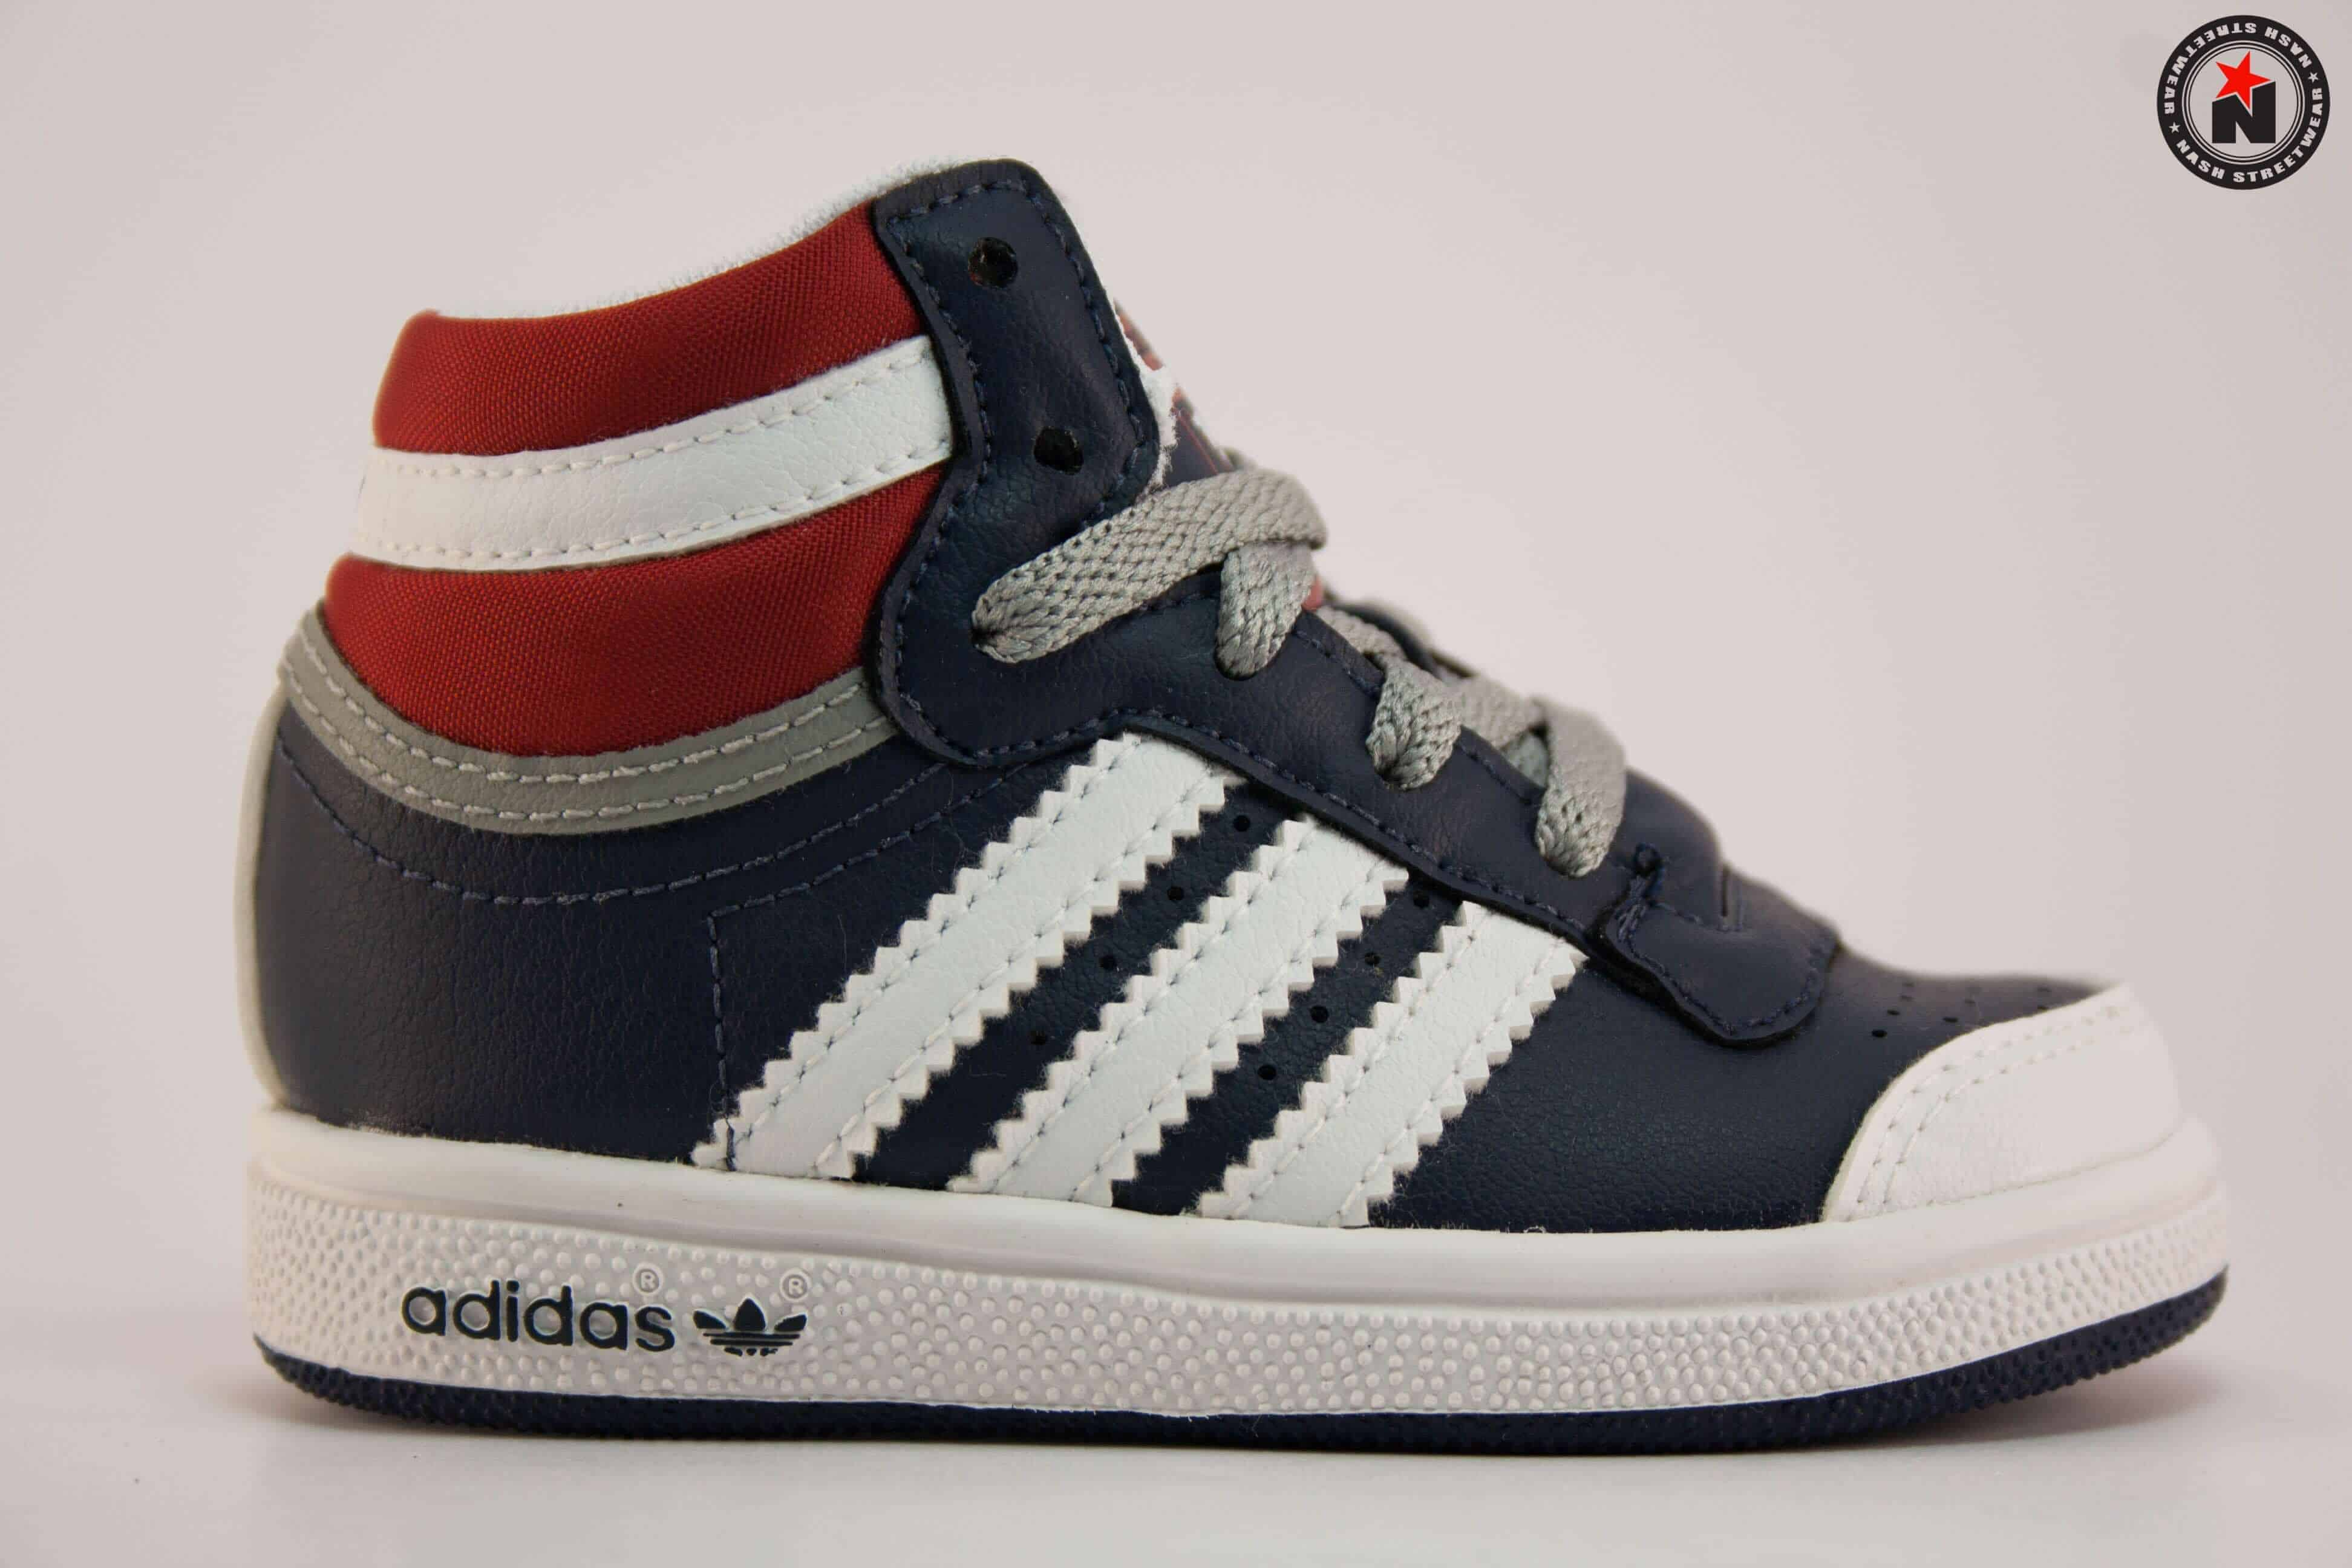 new arrival 6f7f2 3a944 Adidas TOP TEN HI - Chez Nash